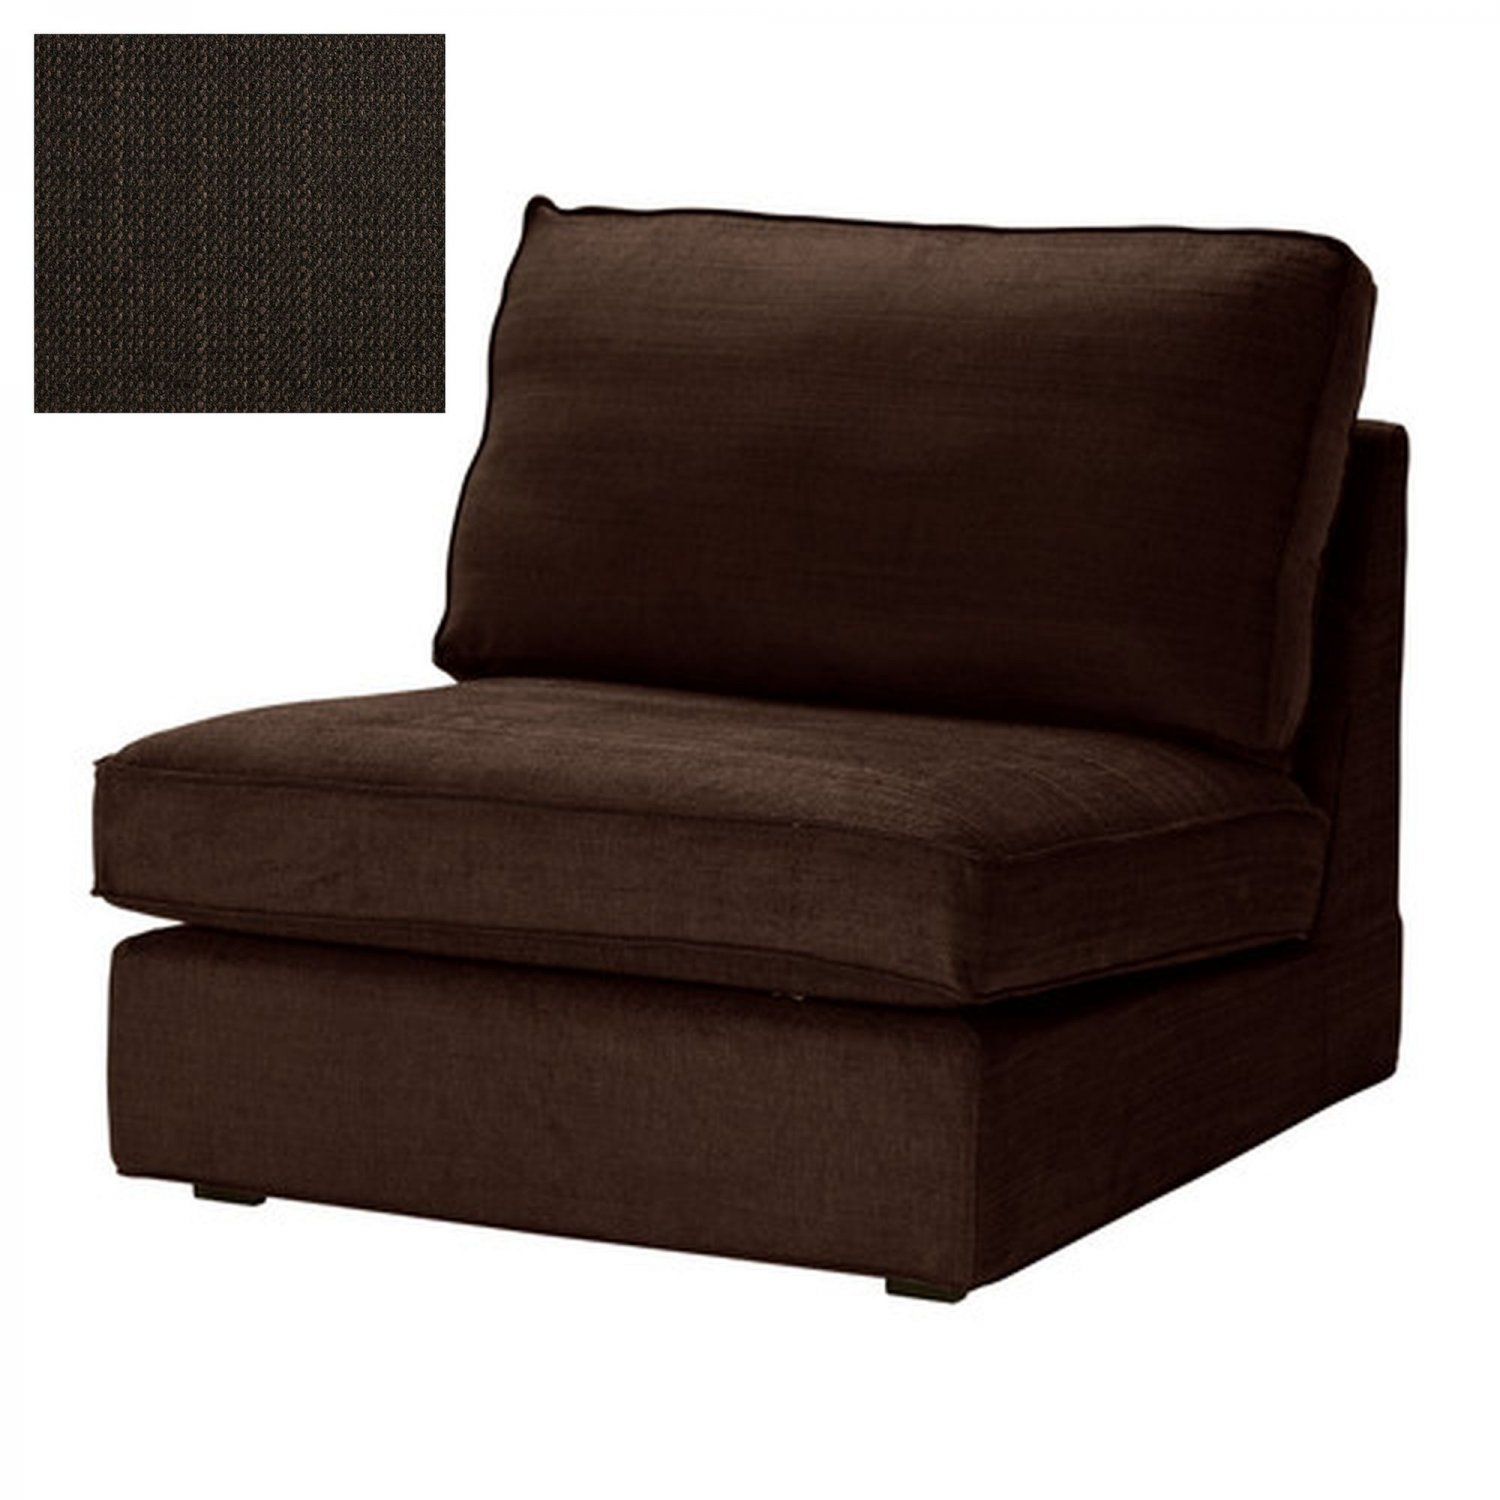 ikea kivik 1 seat sofa slipcover chair cover tullinge dark brown brown bezug housse. Black Bedroom Furniture Sets. Home Design Ideas